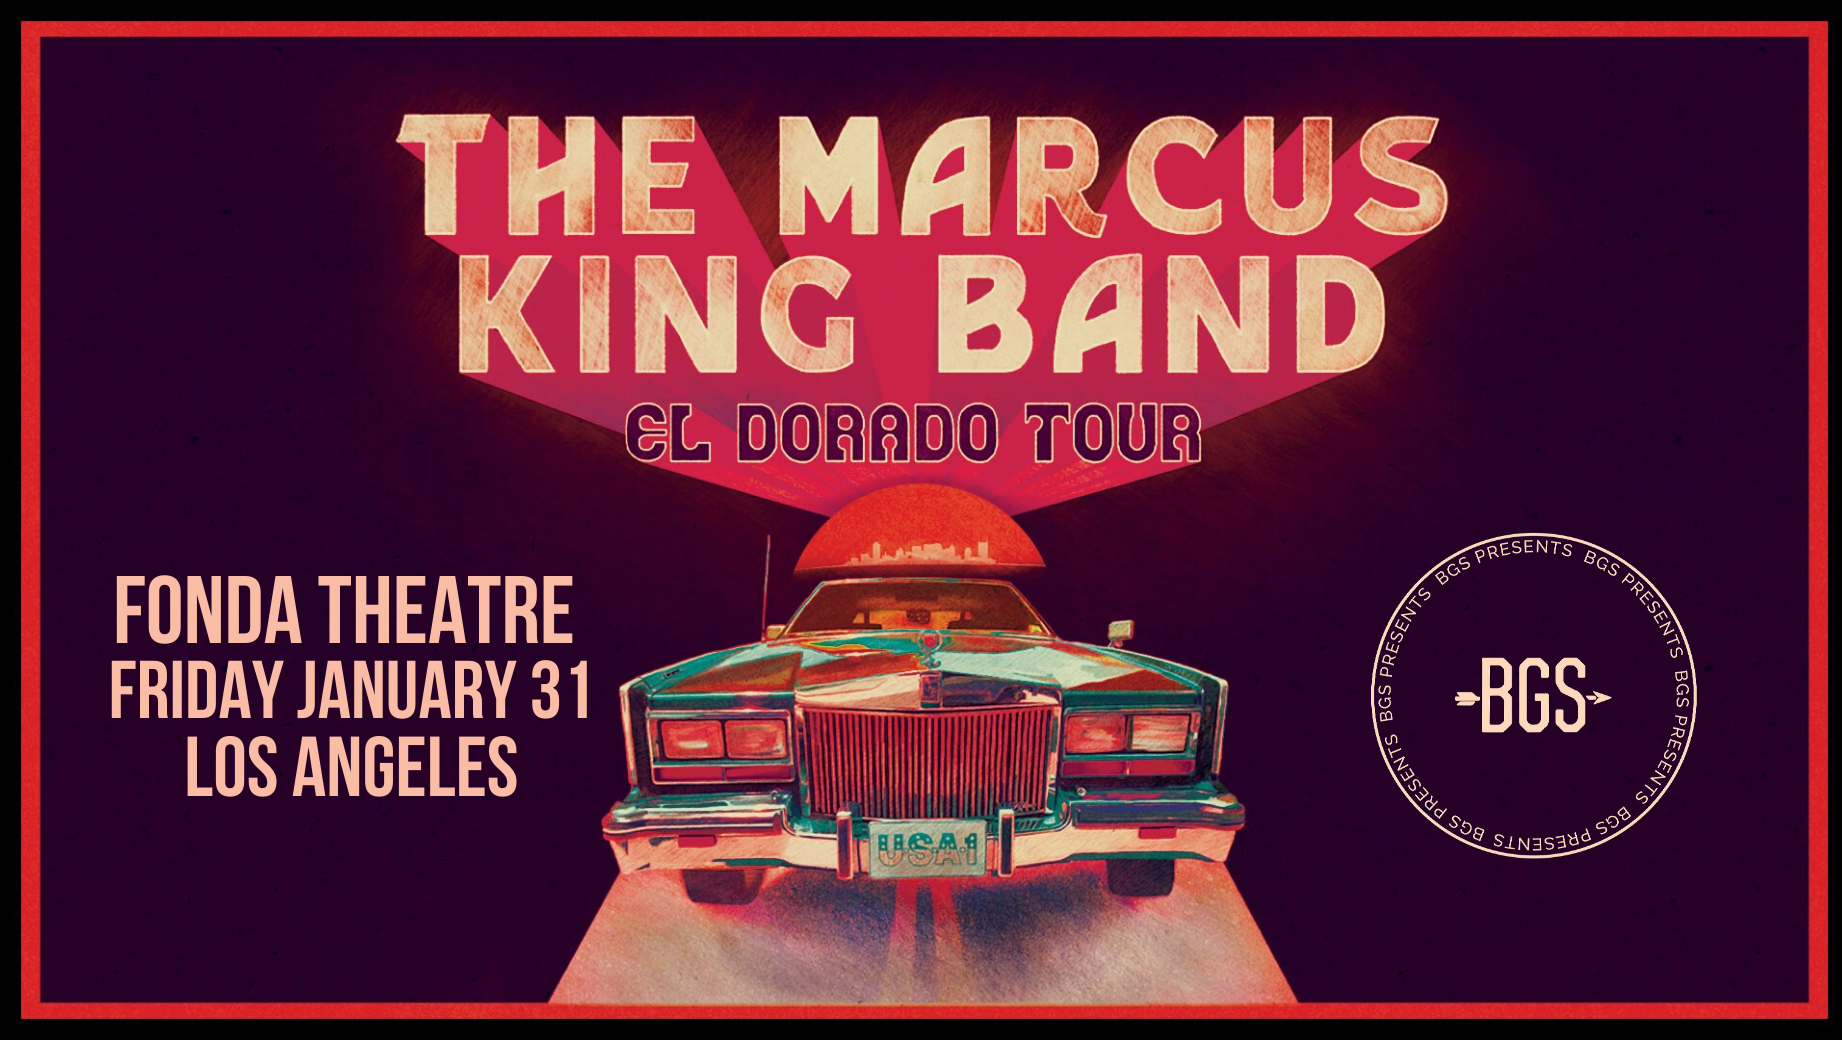 GIVEAWAY: Win tickets to the Marcus King Band @ Fonda Theatre (LA) 1/31